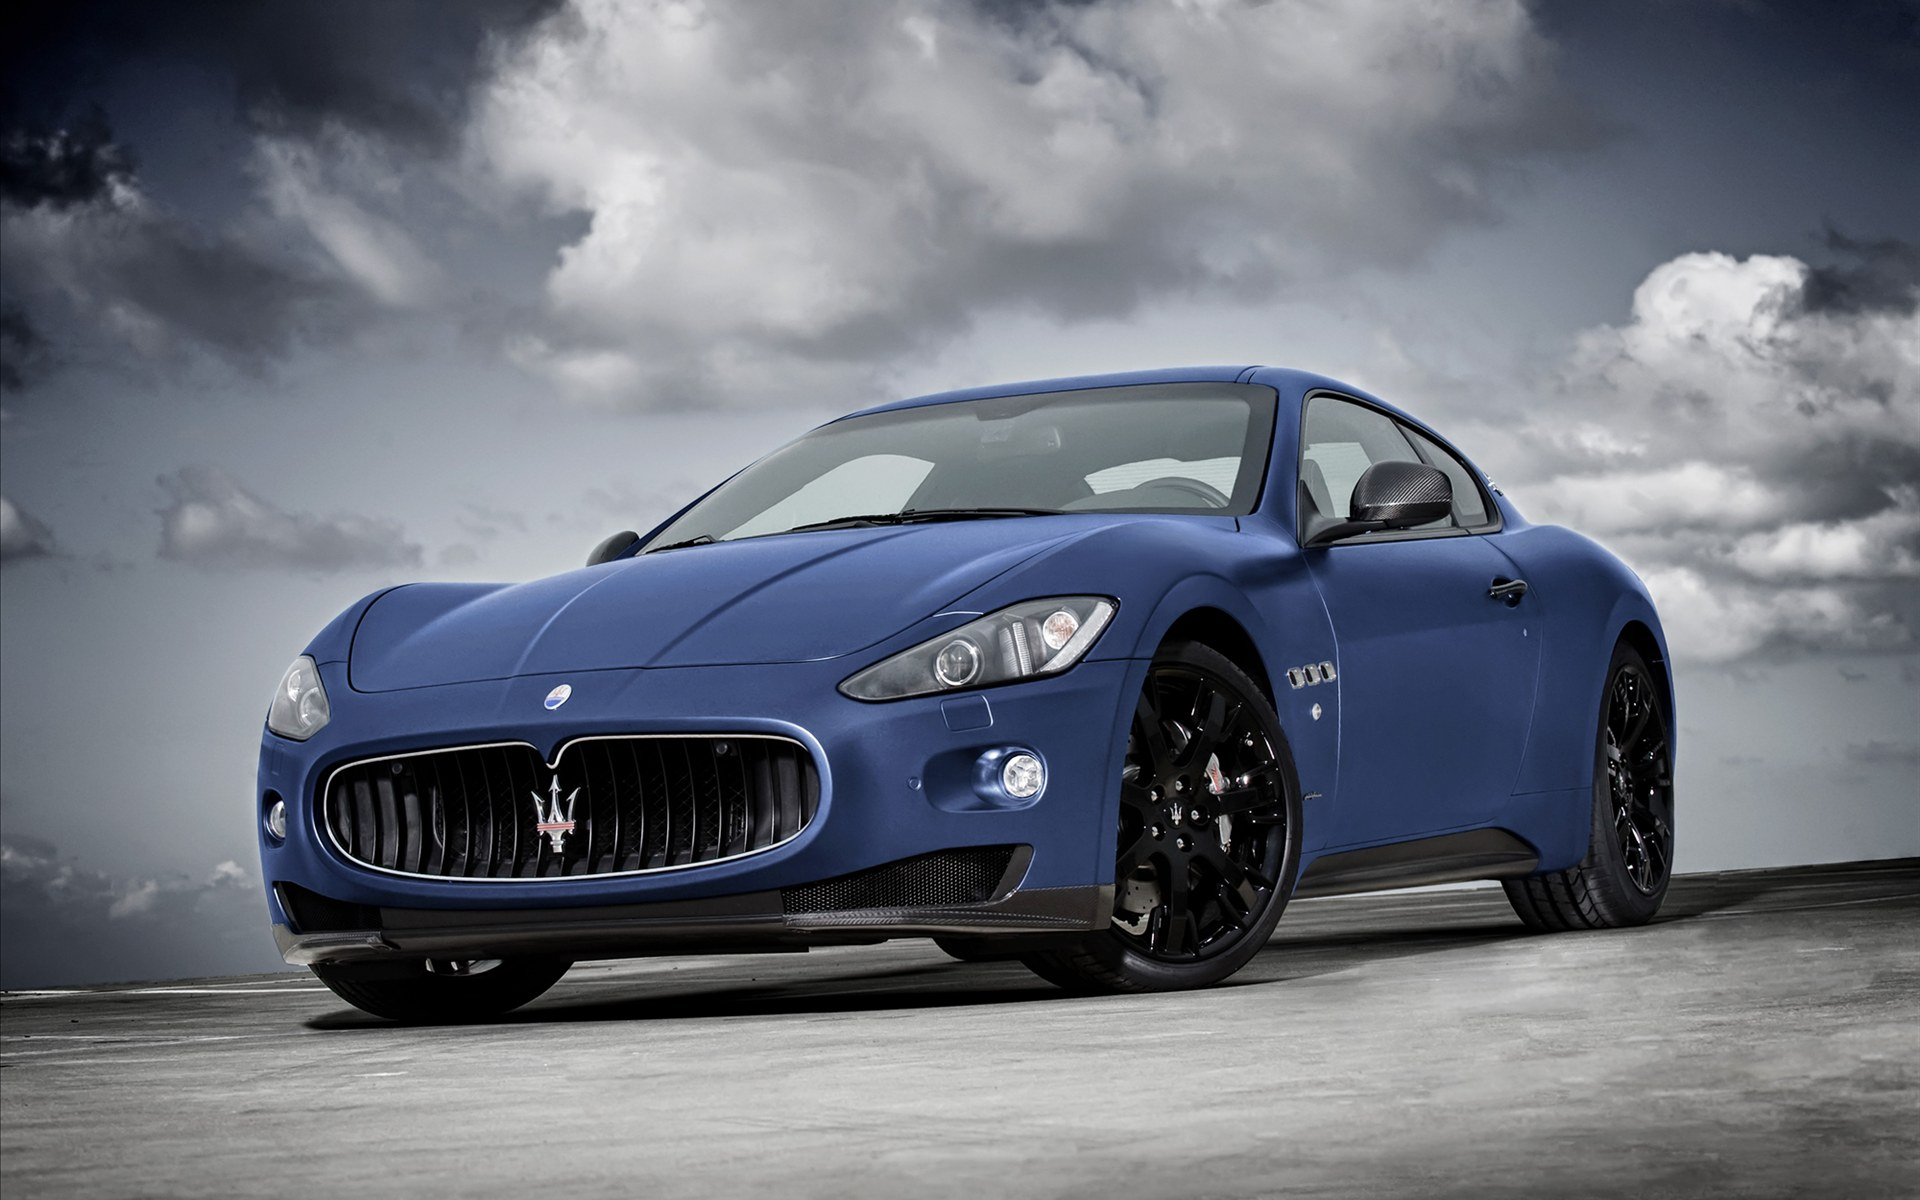 maserati granturismo s 2011 wallpaper hd car wallpapers id 2372. Black Bedroom Furniture Sets. Home Design Ideas